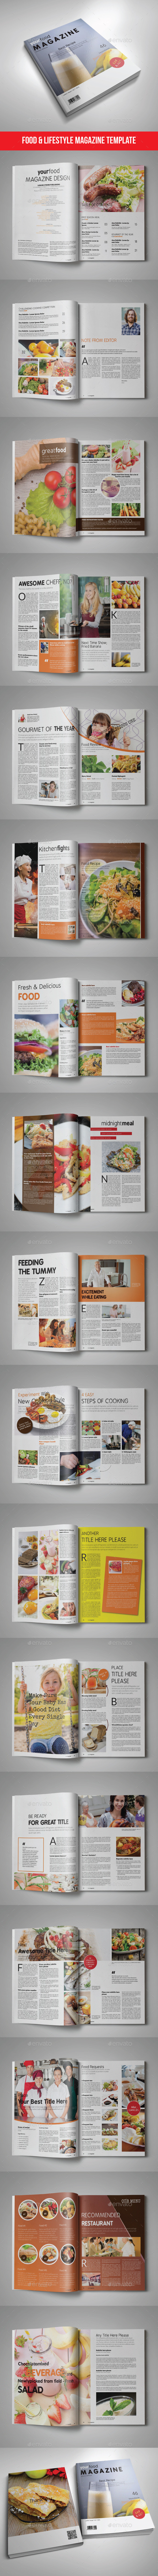 46 Pages Magazine Template